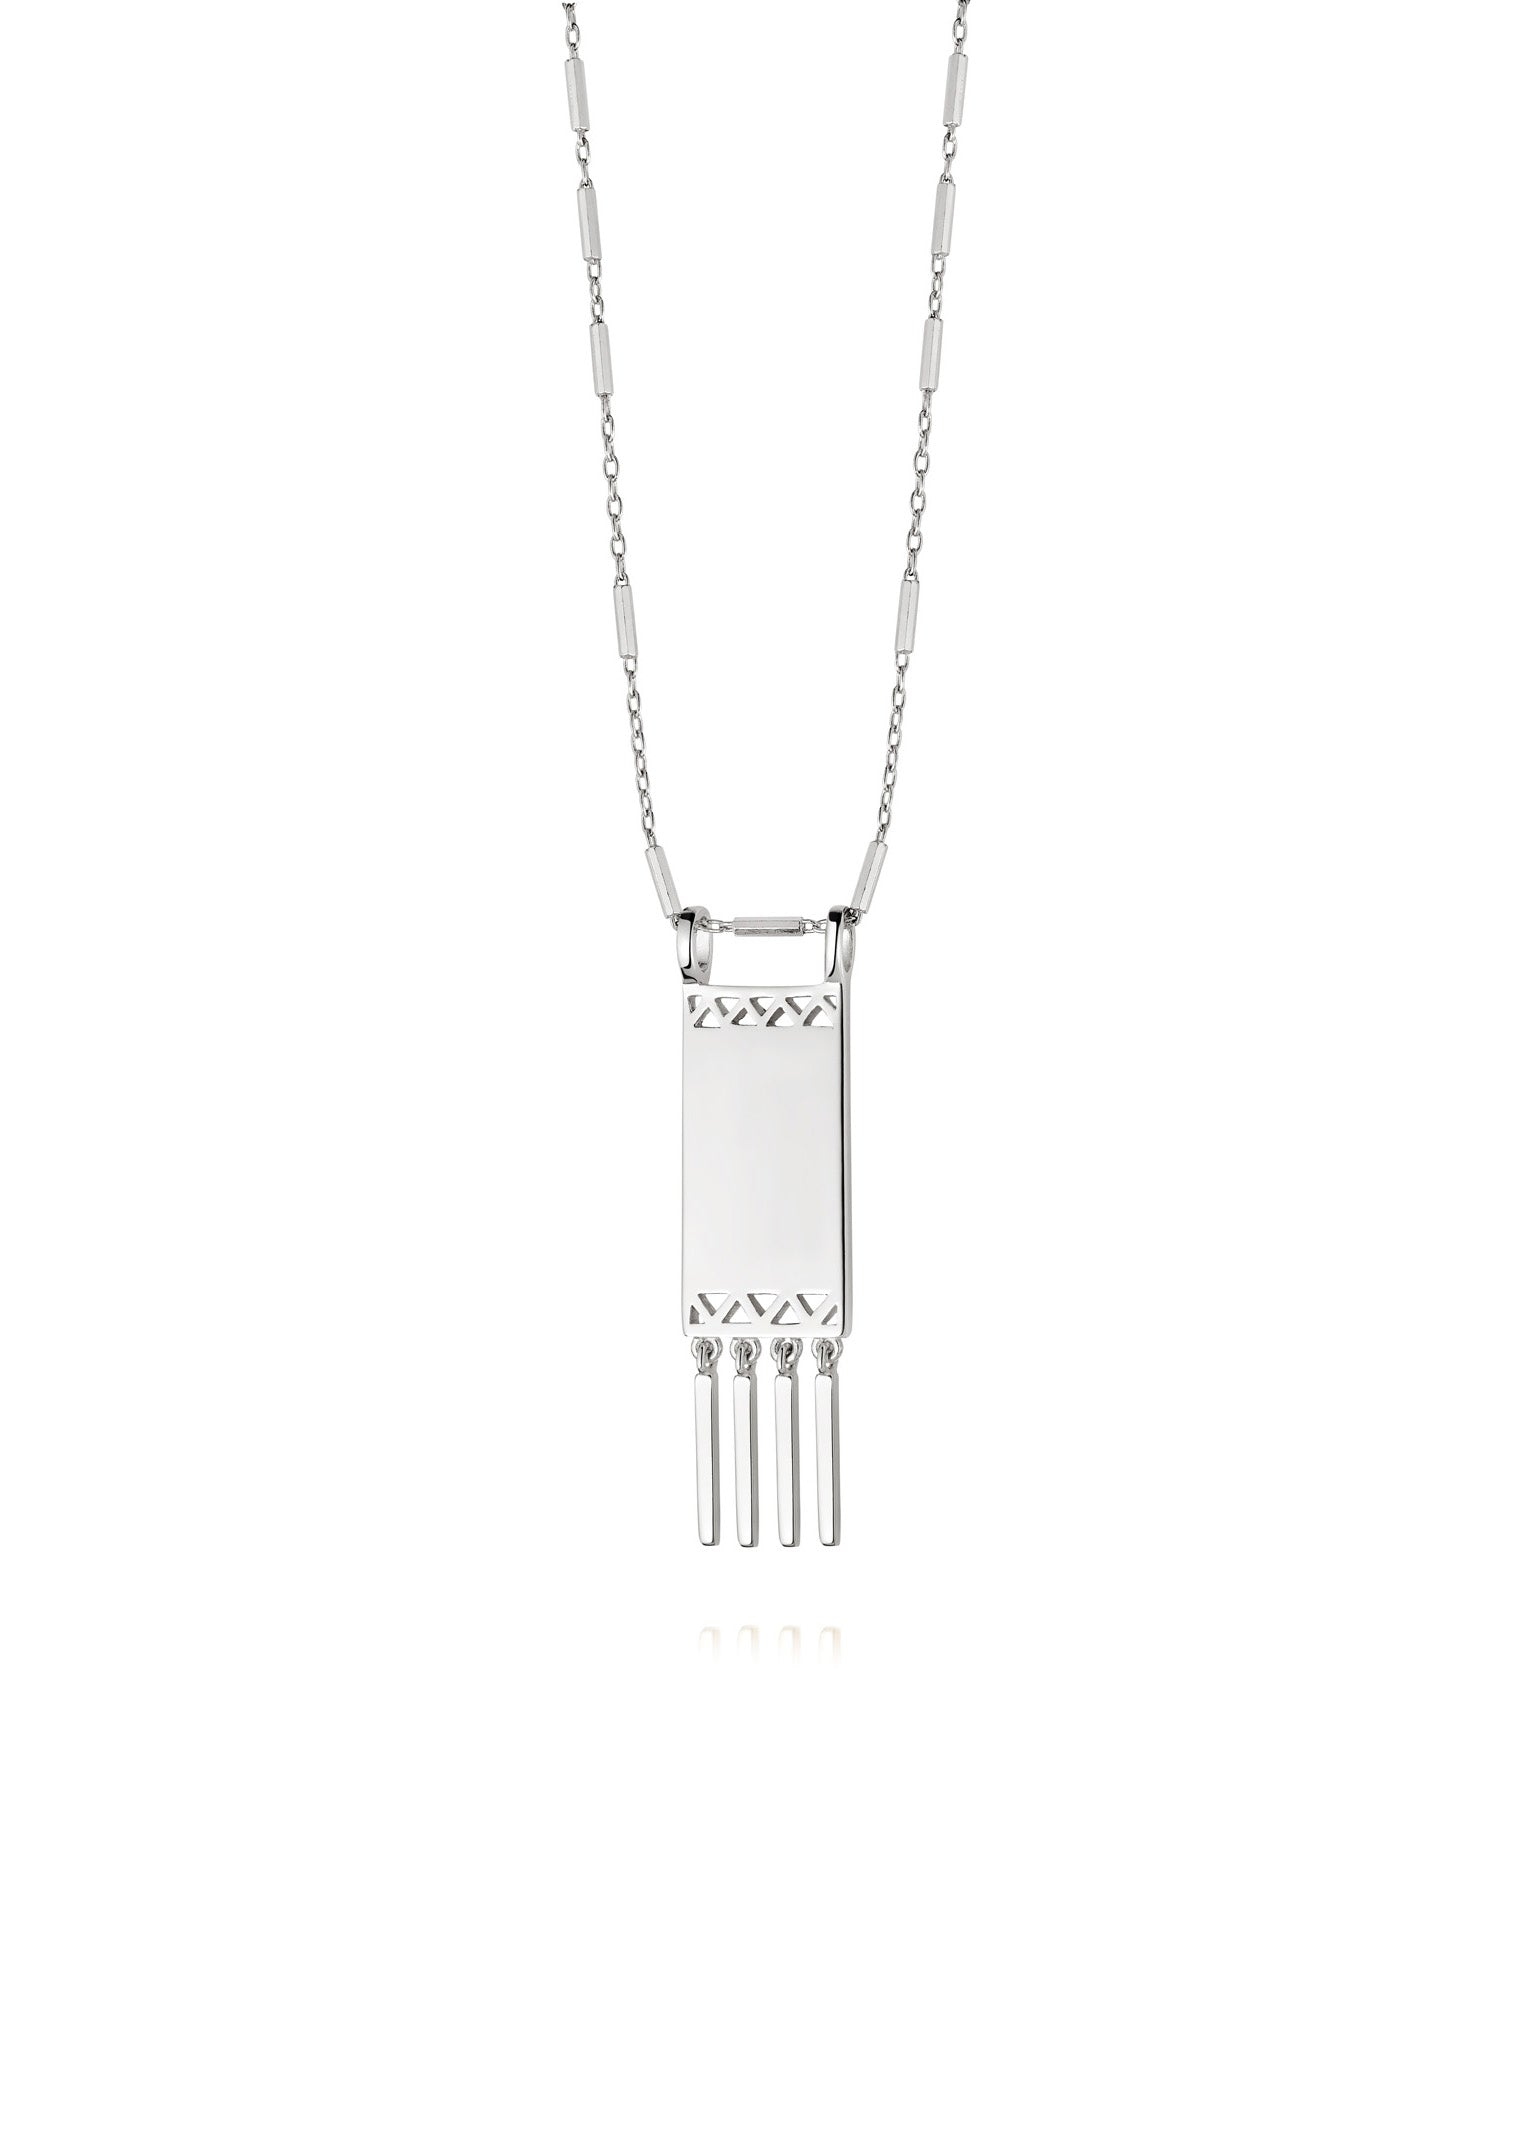 Daisy London Artisan Tapestry Necklace Silver Canada